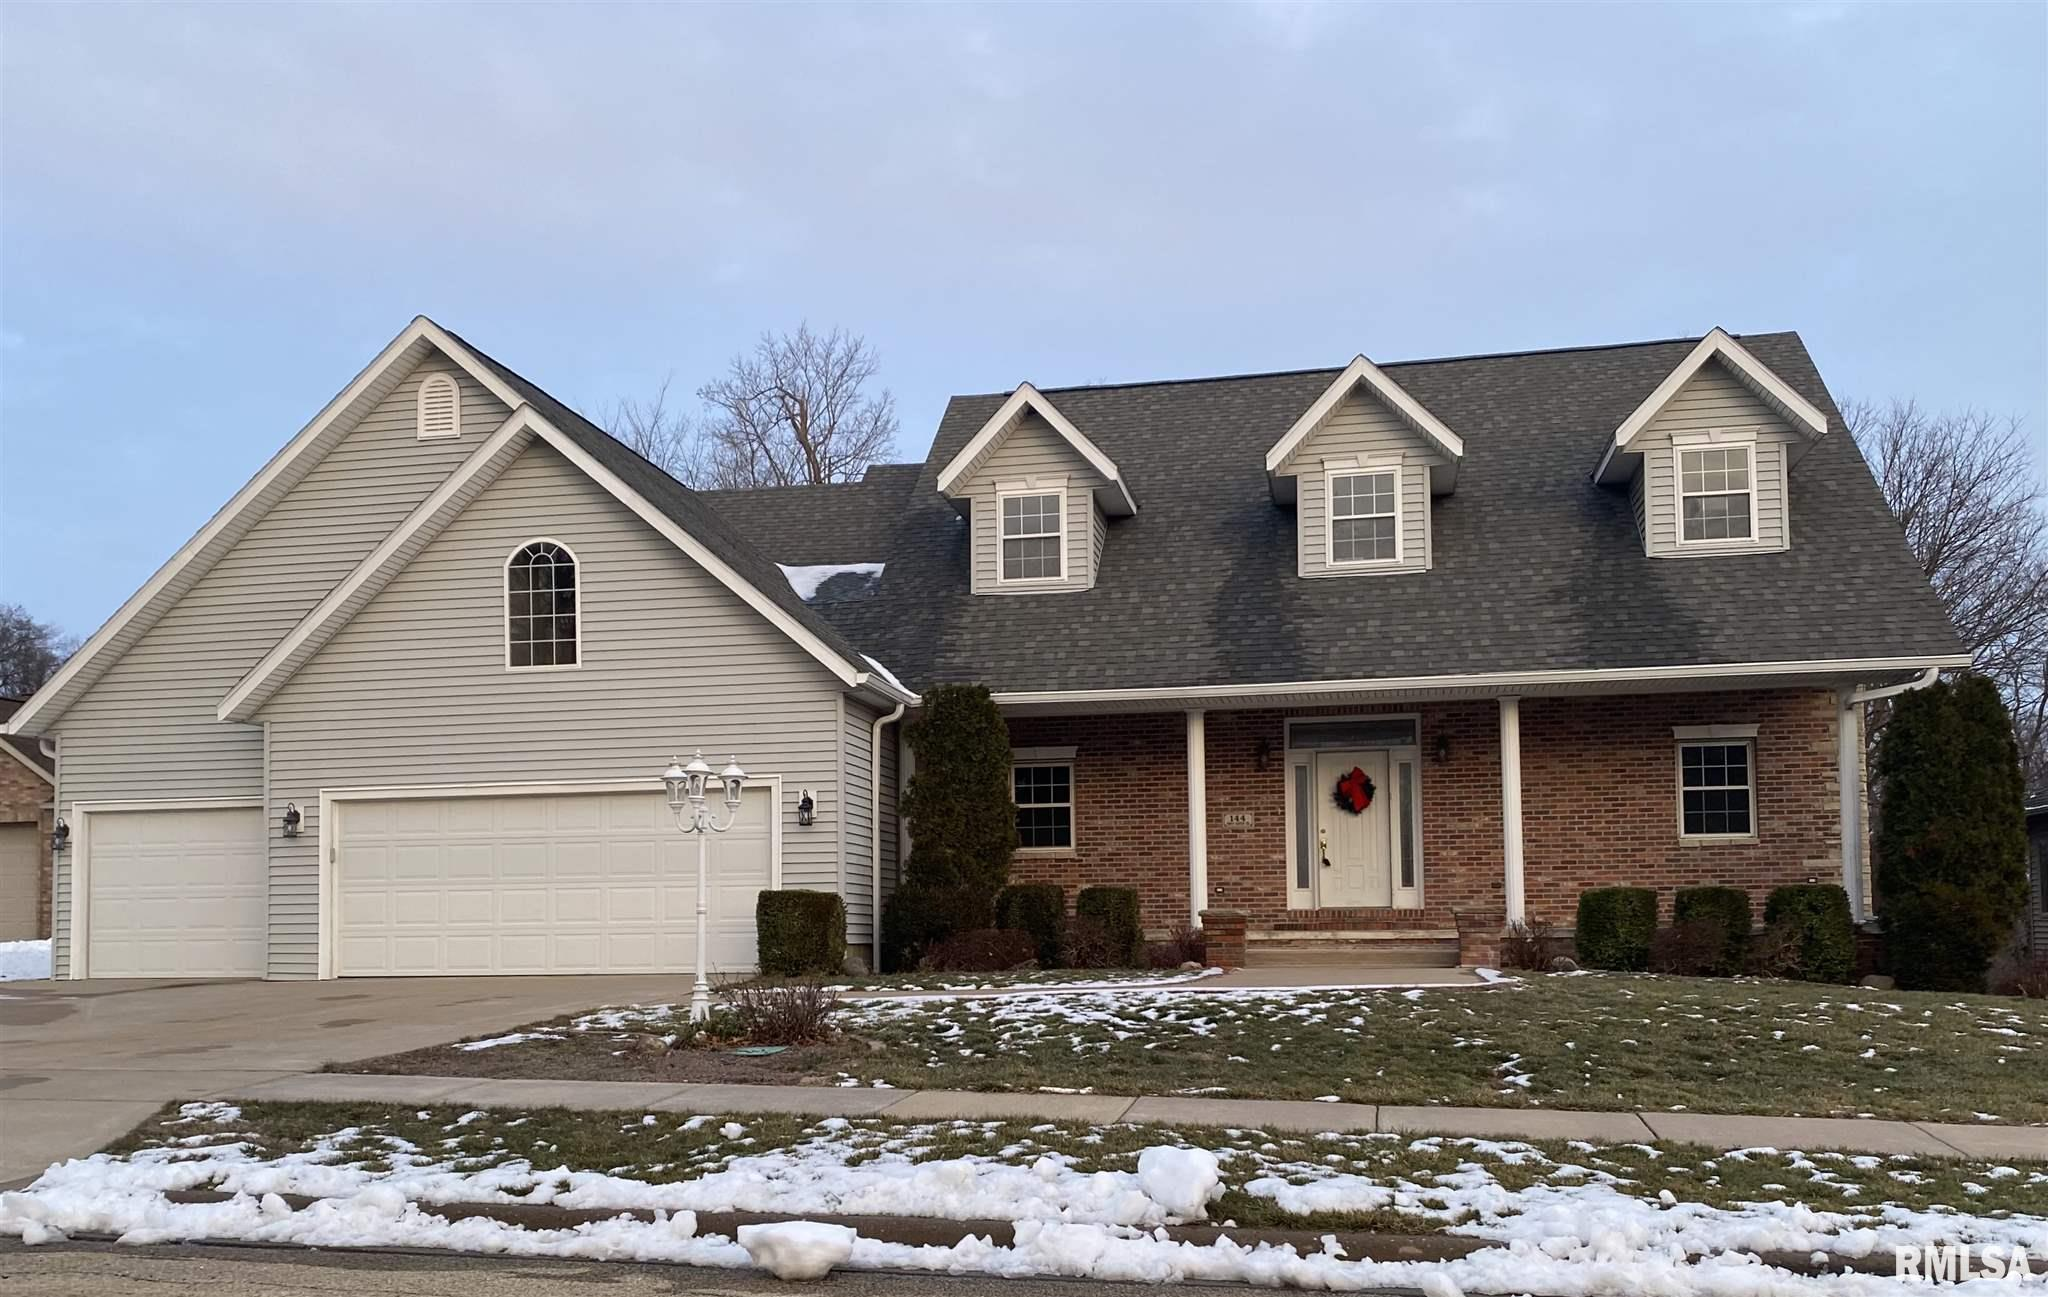 144 FAWN HAVEN Property Photo - East Peoria, IL real estate listing